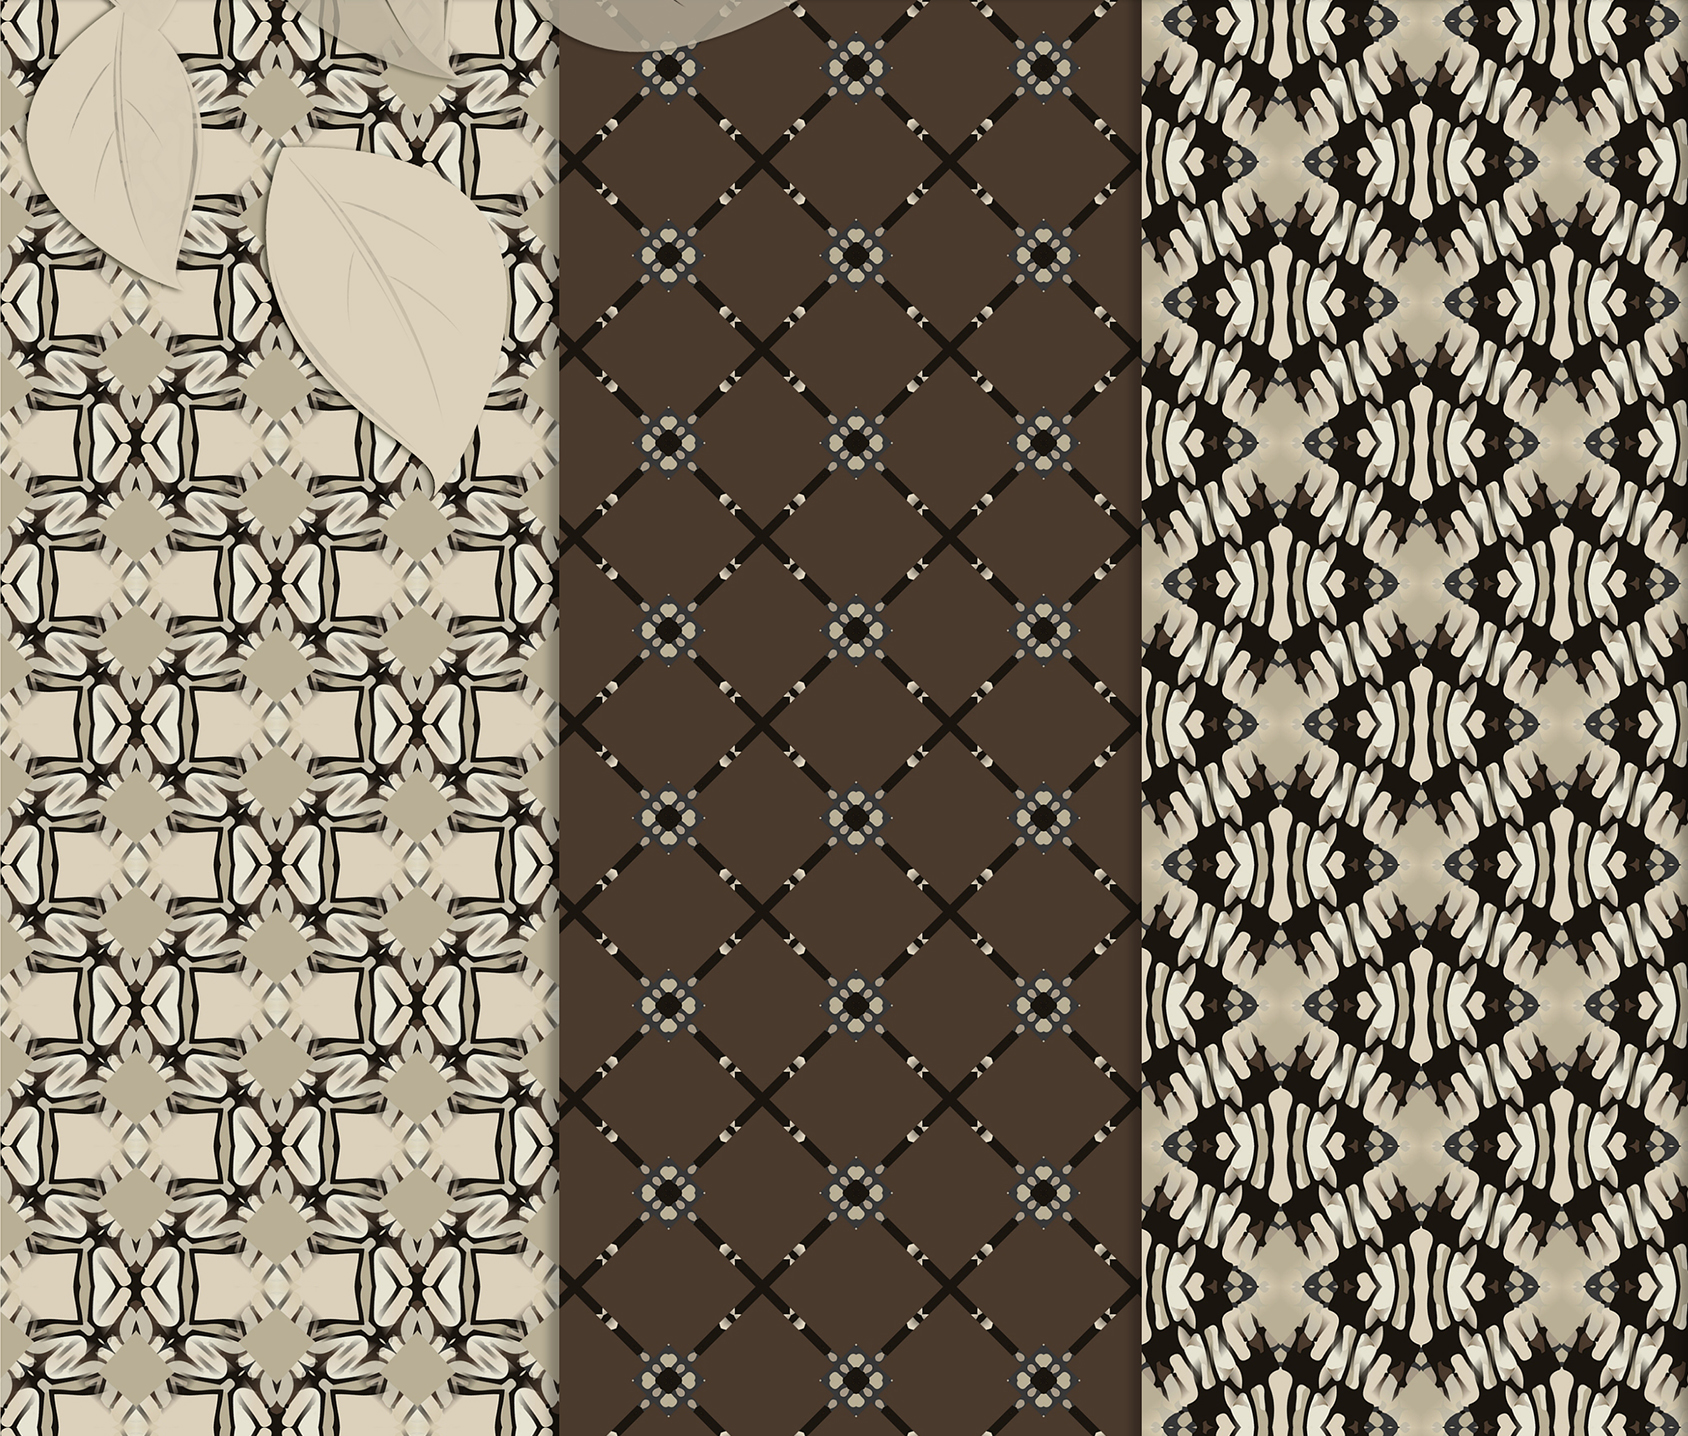 Brown-Gray abstract Digital Scrapbook Paper example image 2